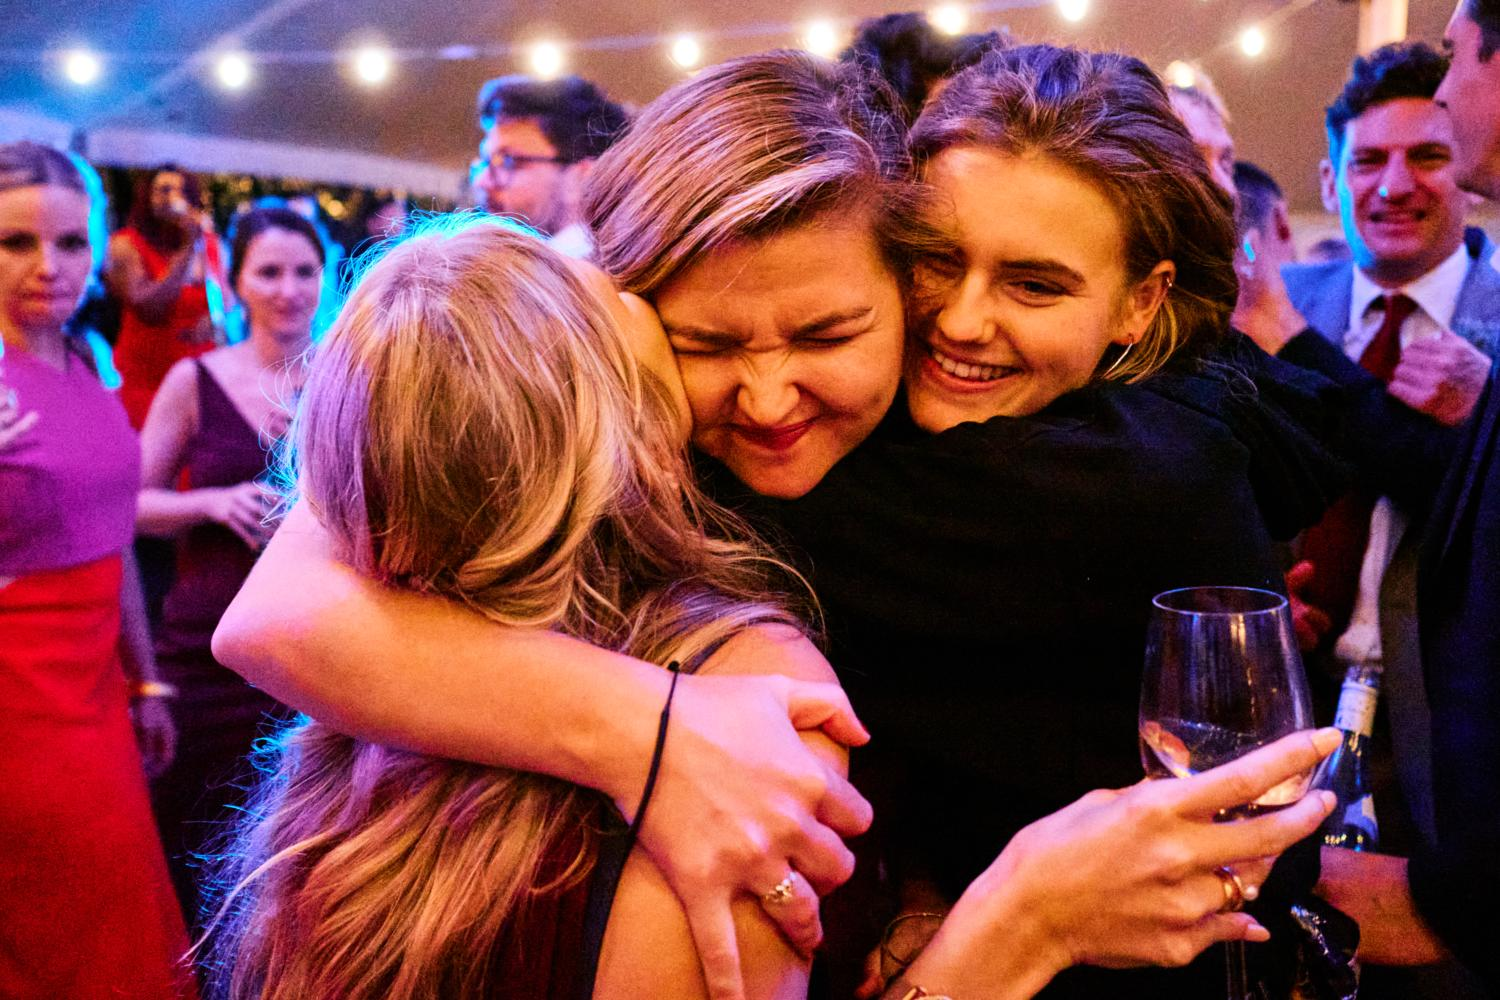 Sister of the bride hugs her friends in a marquee